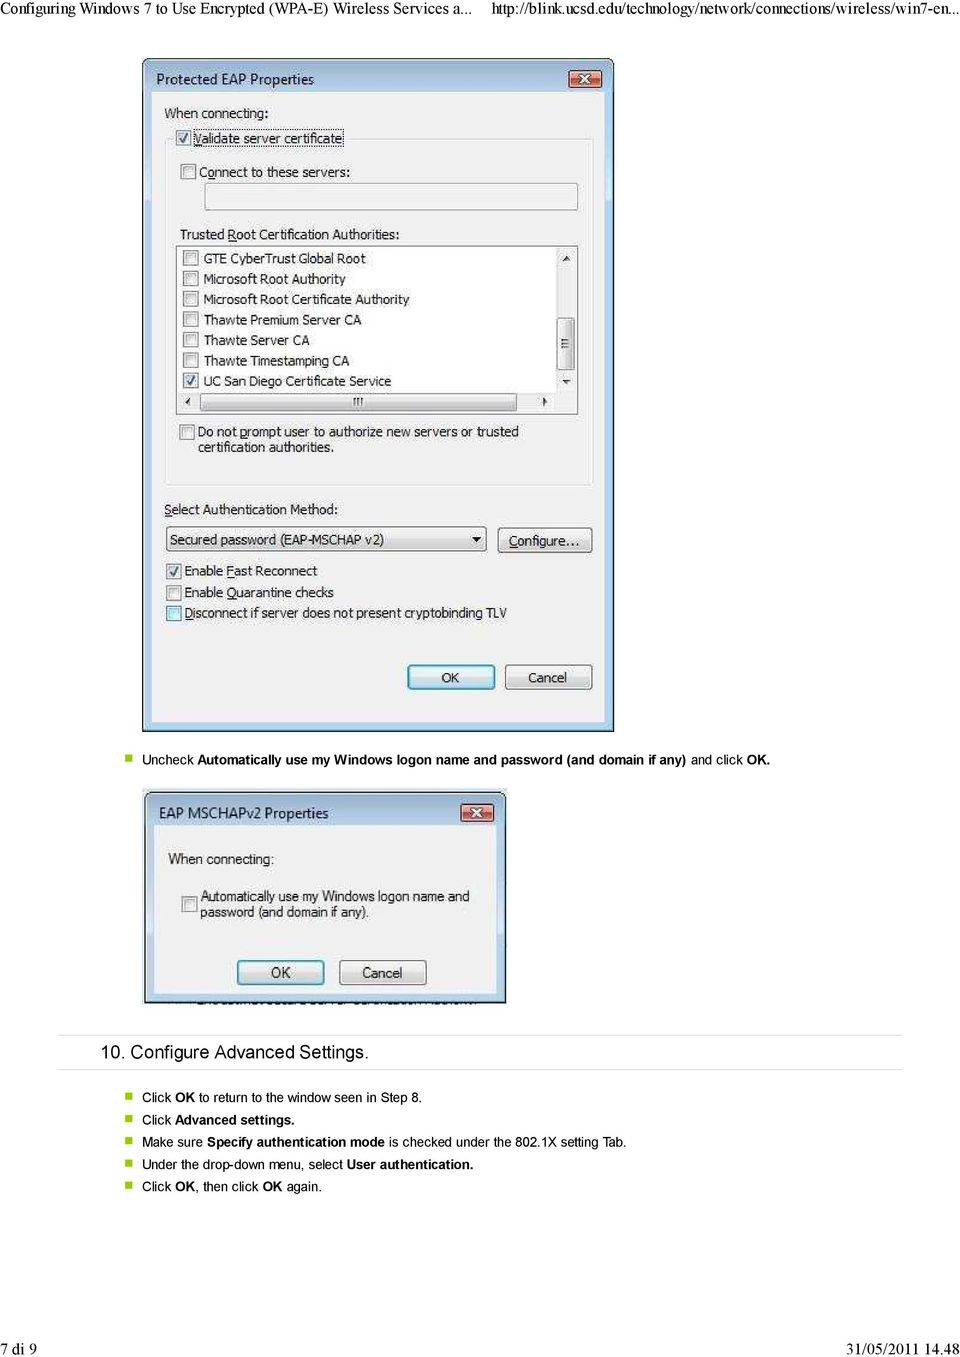 10. Configure Advanced Settings. Click OK to return to the window seen in Step 8.